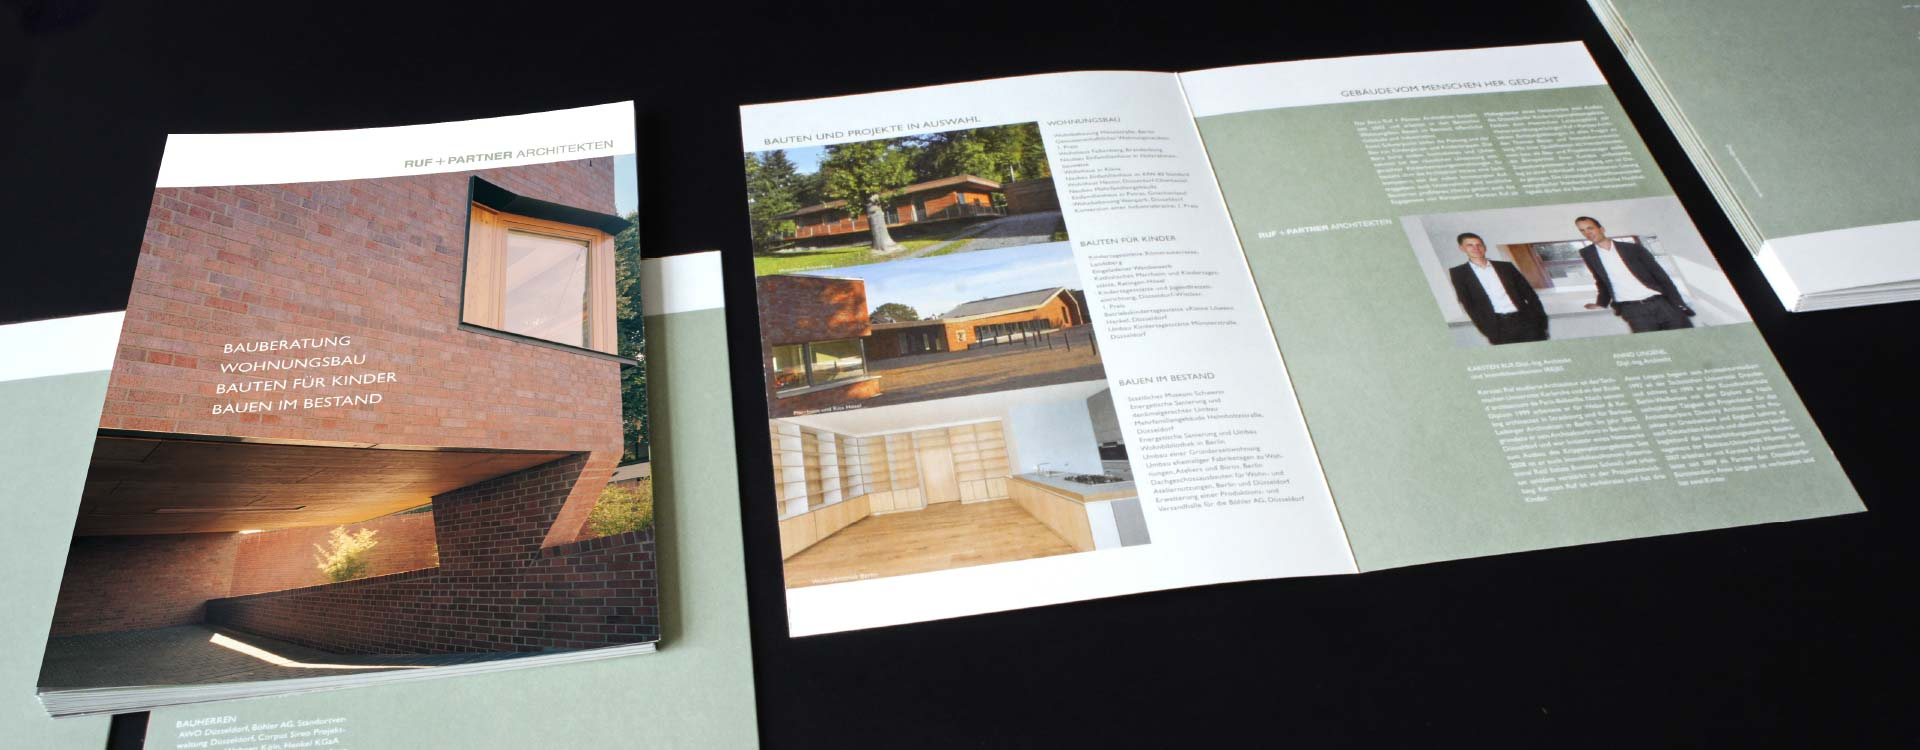 Leaflets for Ruf + Partner architects office; Design: Kattrin Richter | Graphic Design Studio